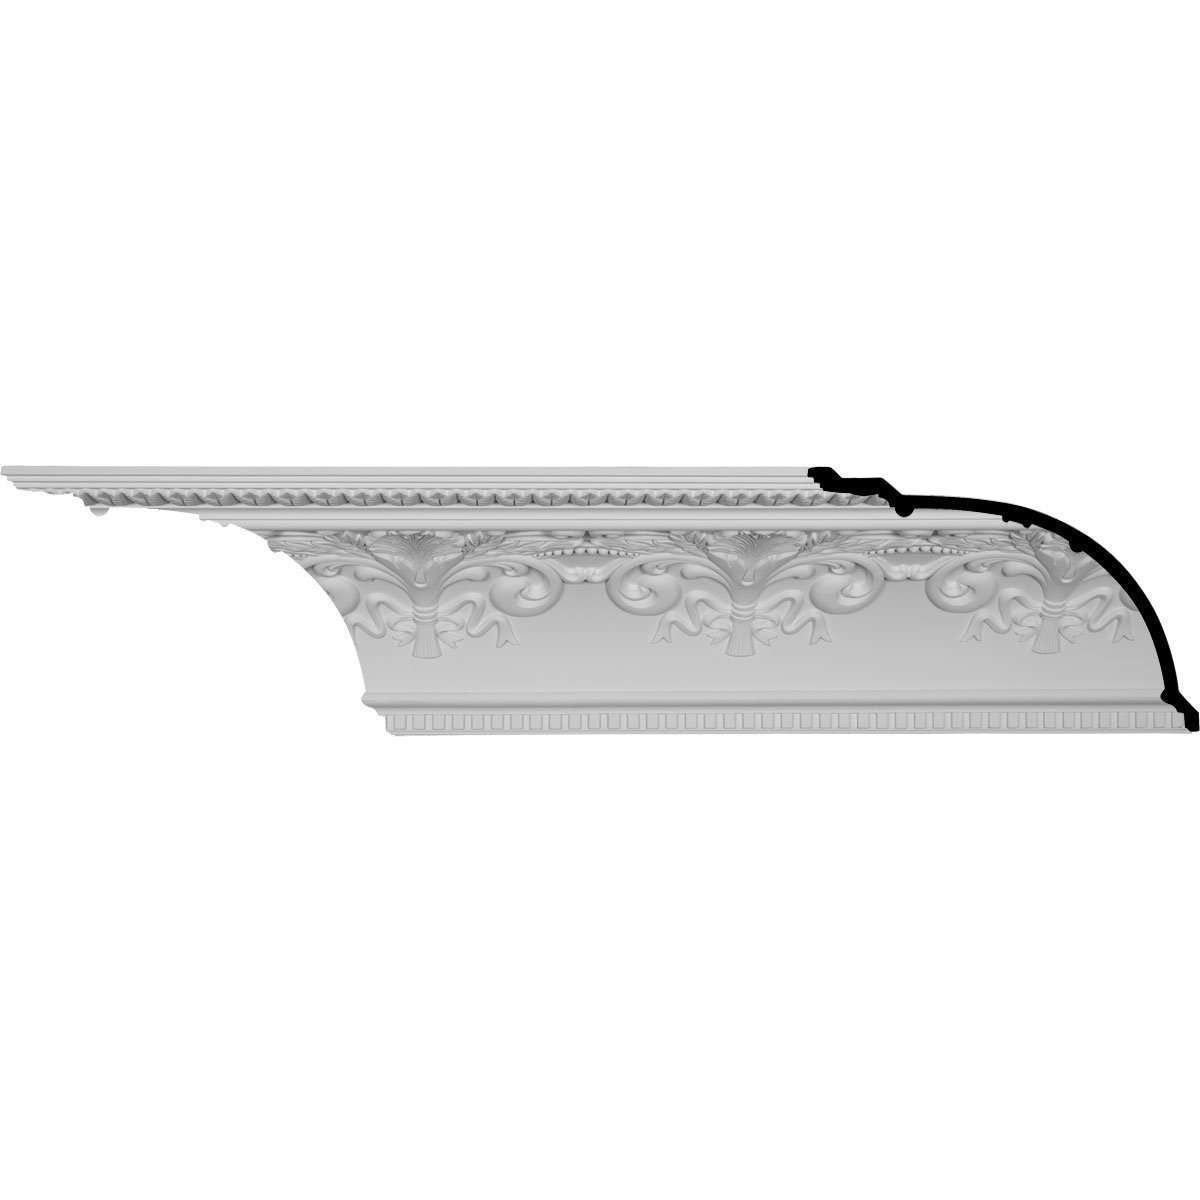 Ekena Millwork MLD11X16X19SY-CASE-12 11-3/8'' H x 16'' P x 19-5/8'' F x 95-7/8'' L Sydney Crown Molding with 16'' Repeat (12-Pack)